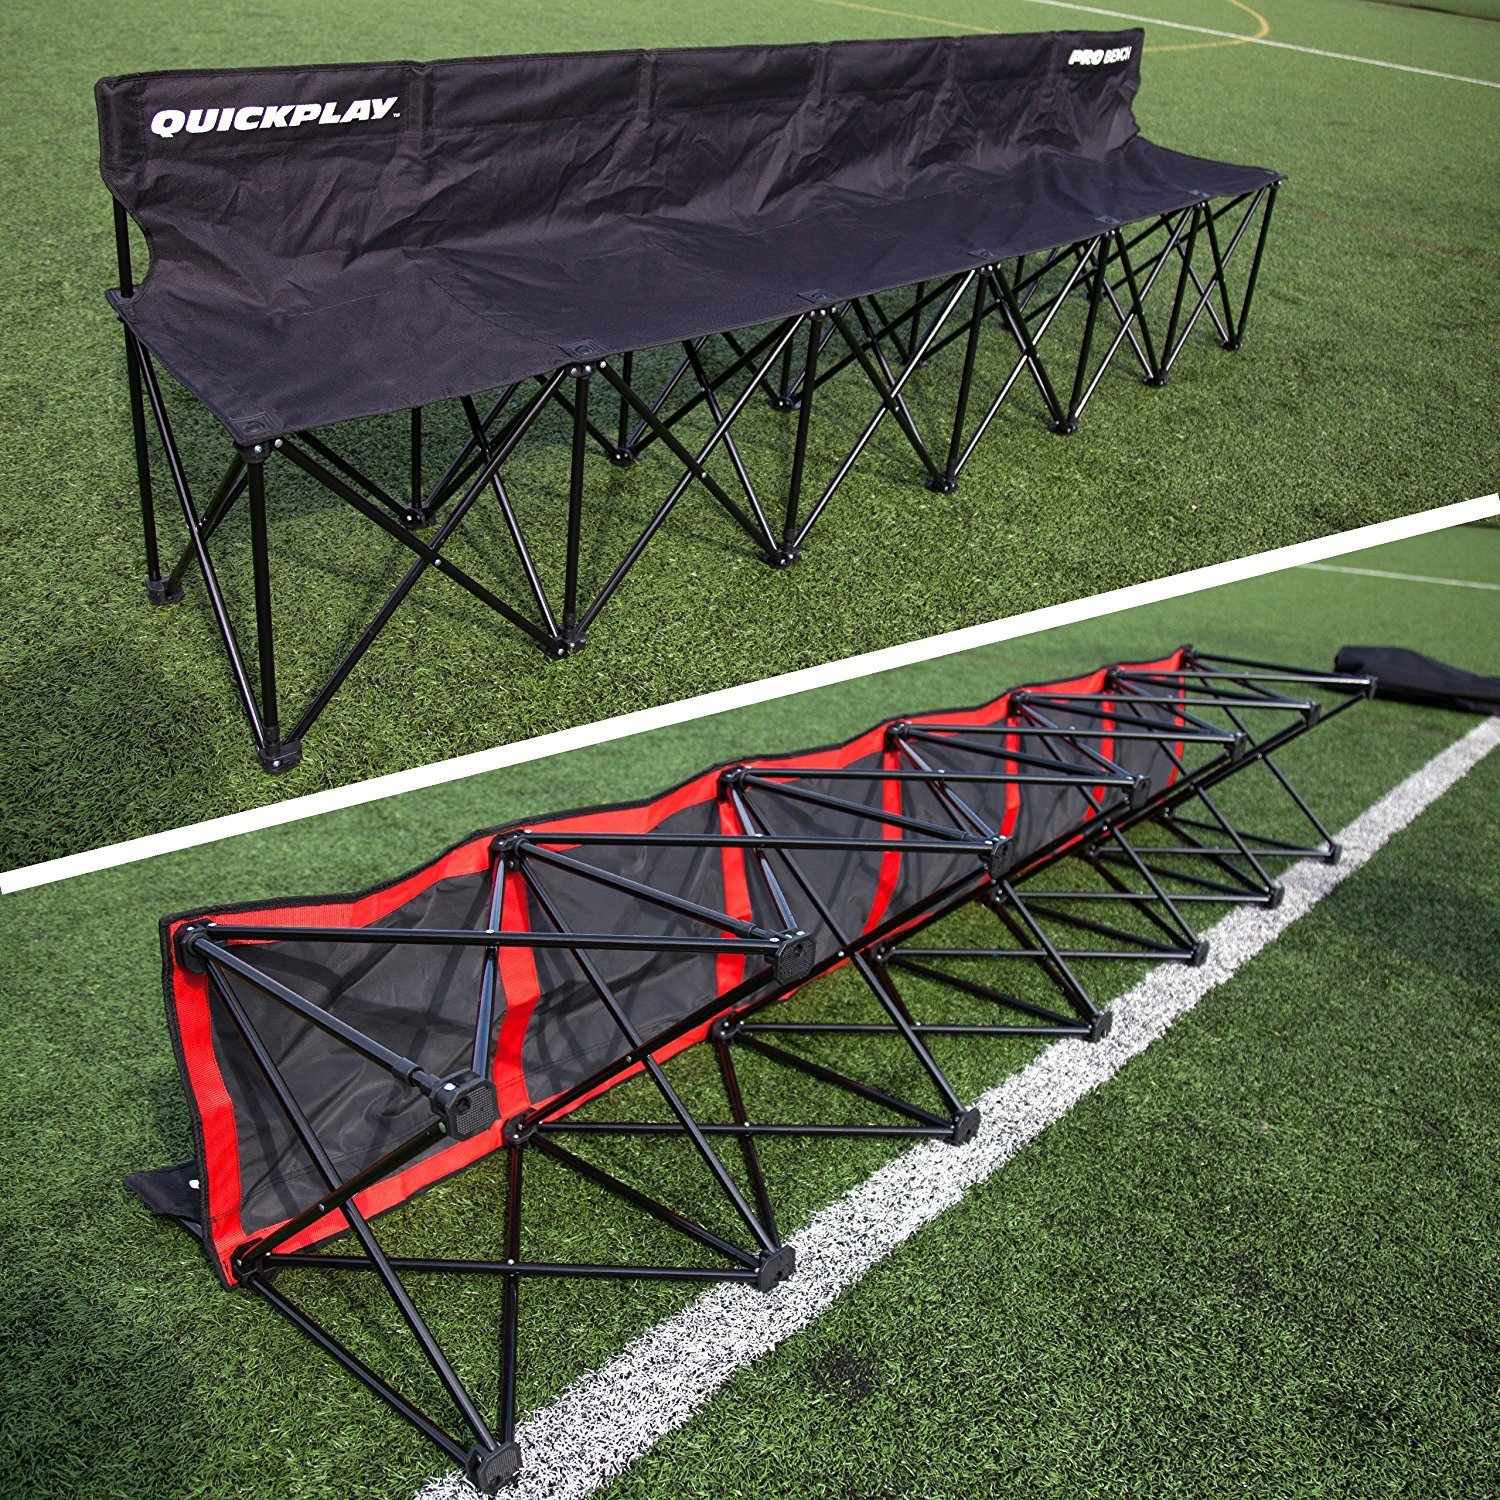 Quickplay Pro Folding Bench 4 Or 6 Seats Build To Last